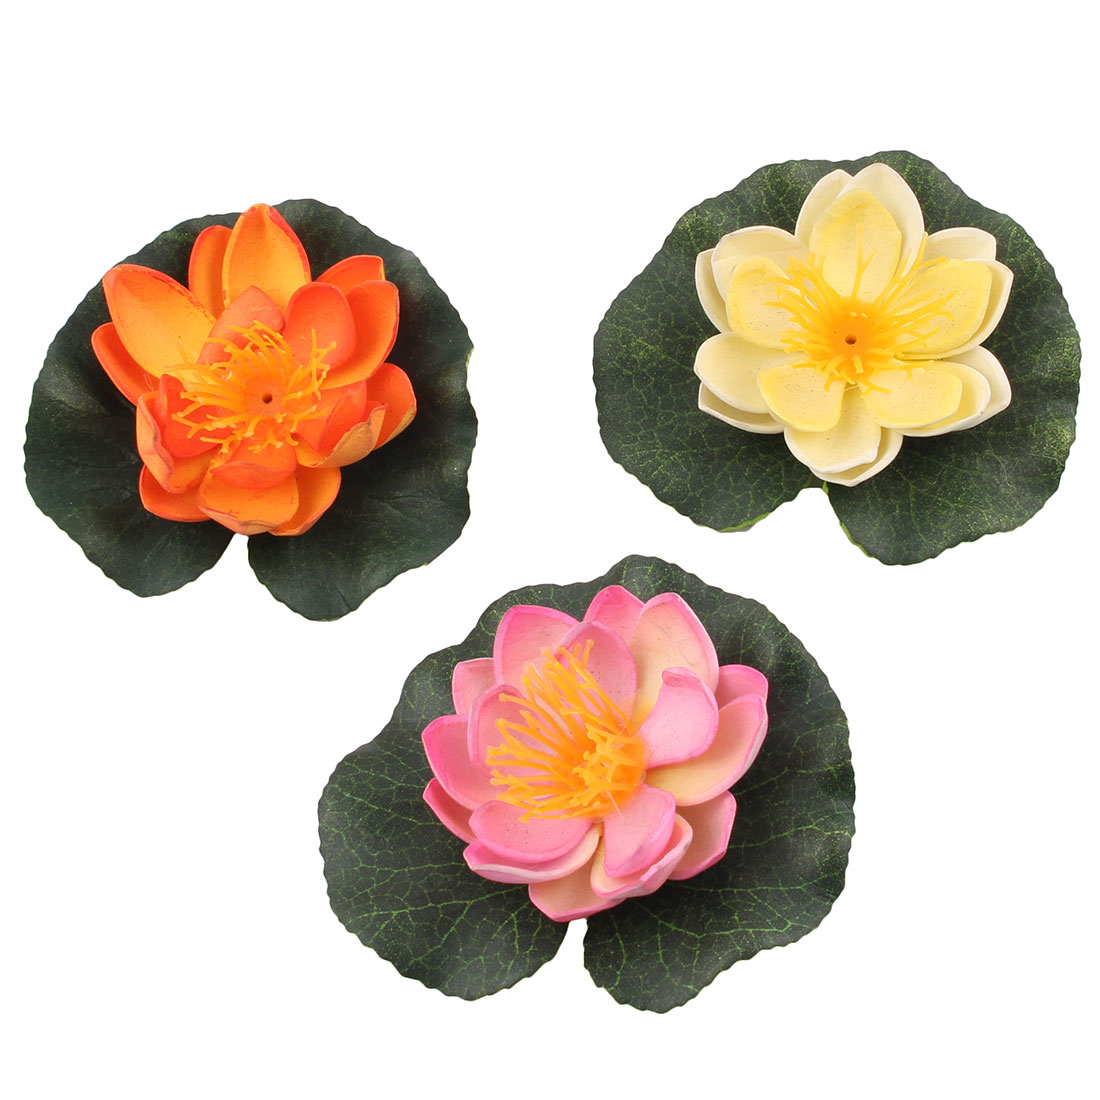 Unique BargainsAquarium Fish Bowl Artificial Float Lotus Aquatic Plant Flower Decoration 3 Pcs